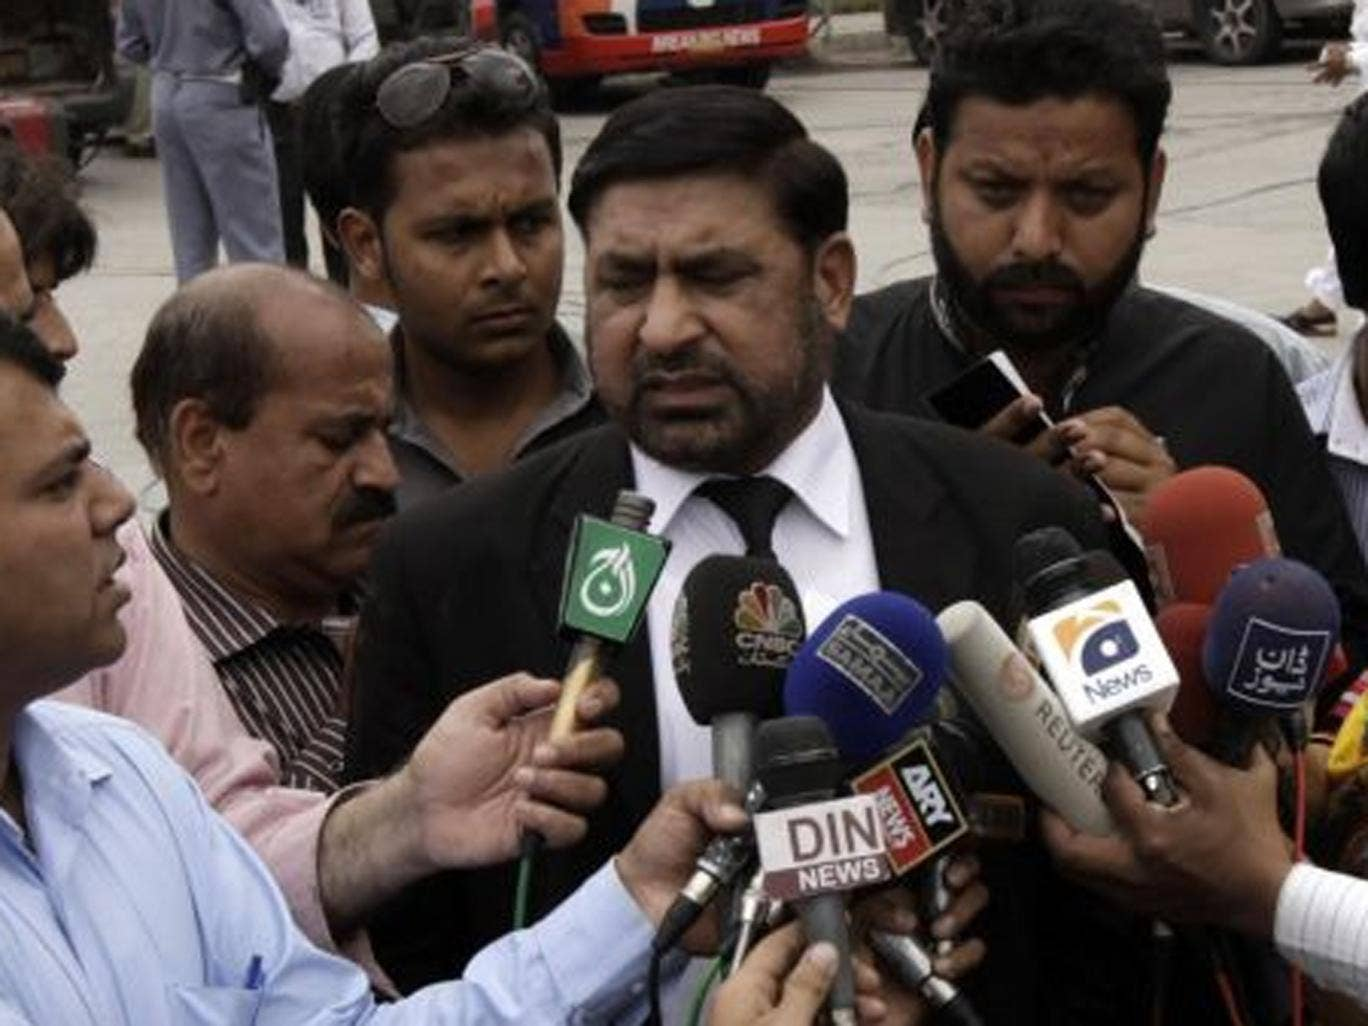 Prosecutor Chaudhry Zulfikar was shot dead as he headed to work